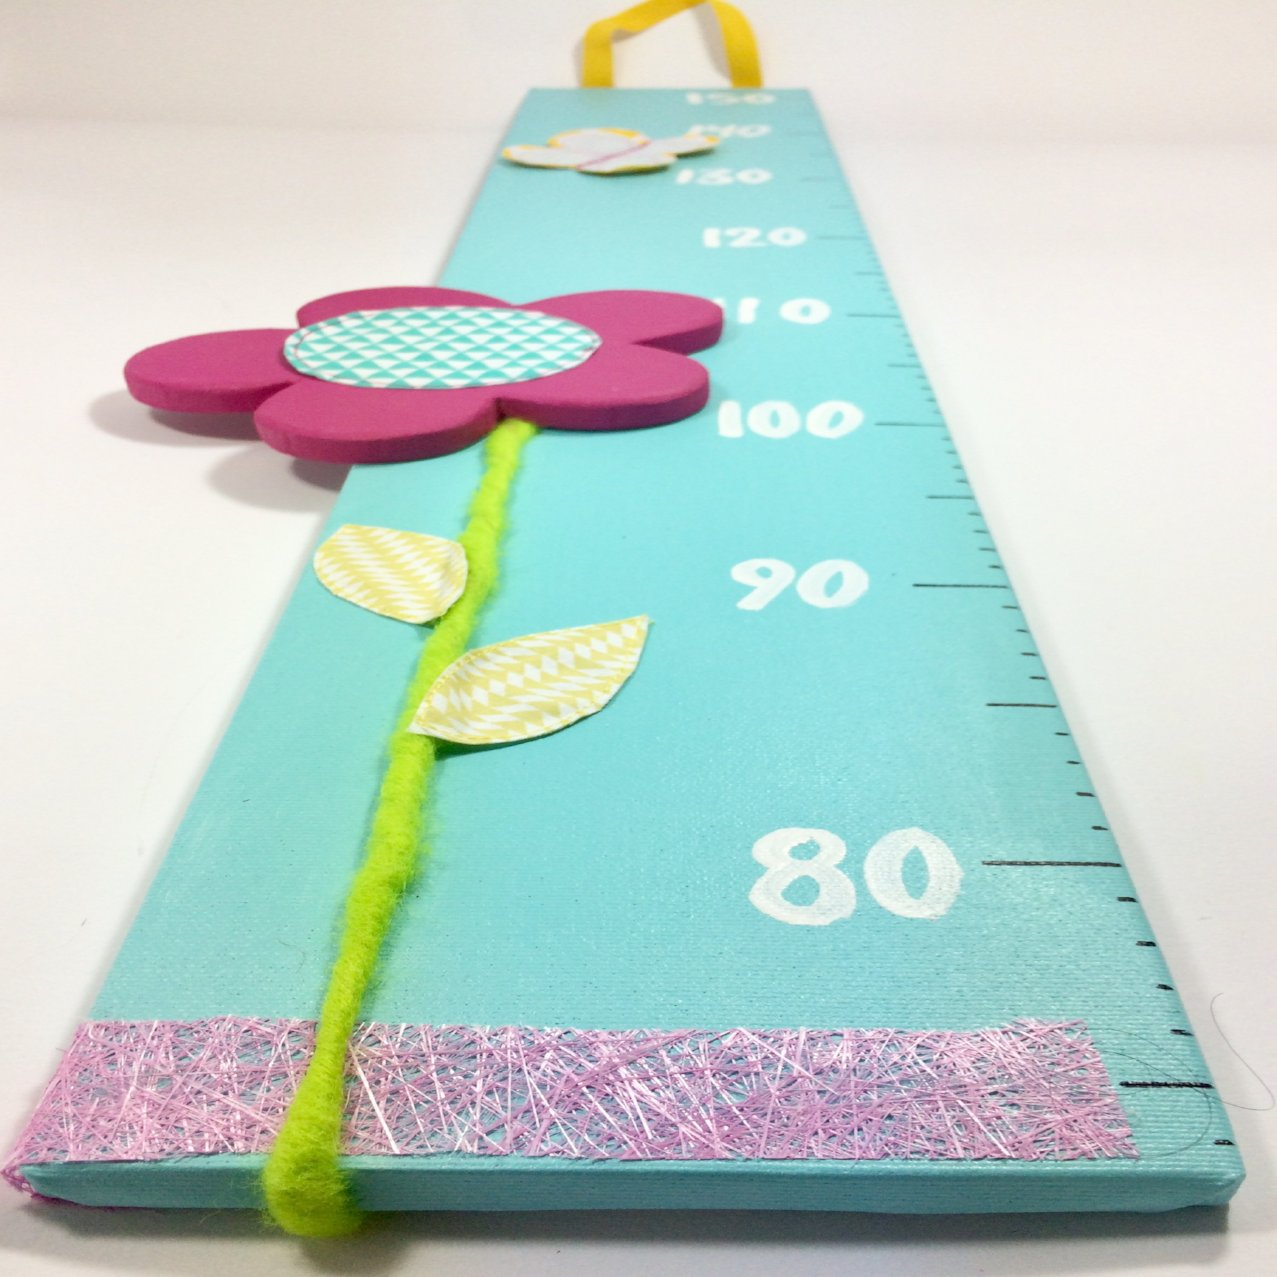 Flower Height Chart Blue - Kids Room Decor | Toys Gifts | Childrens Interiors | Rooms for Rascals